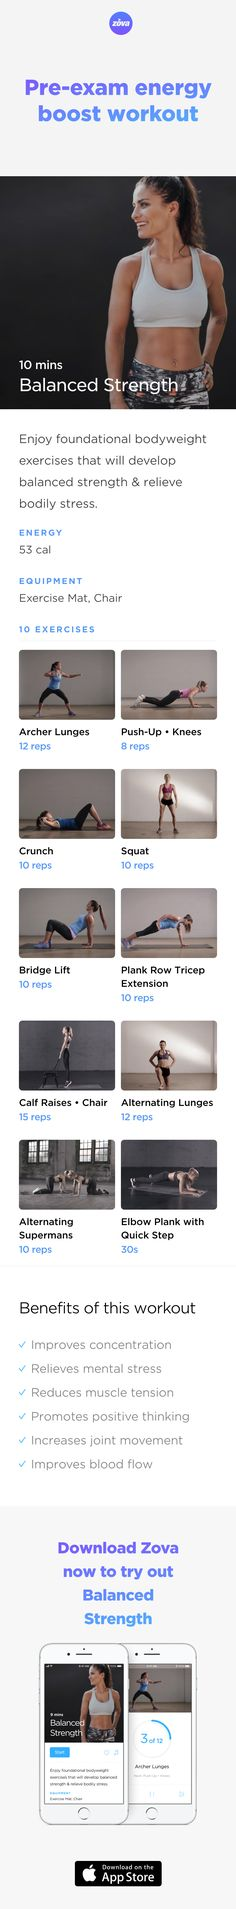 Feeling sluggish? Hours of studying will do that to you! What you need is this short bodyweight workout to boost your energy levels, increase your focus and help with your next exam performance. This workout also increases your endorphin levels, meaning you'll be less stressed and happier. #weightloss #workout #fitness #HIIT #fullbody #sweat #bodyweight #calories #athome #student